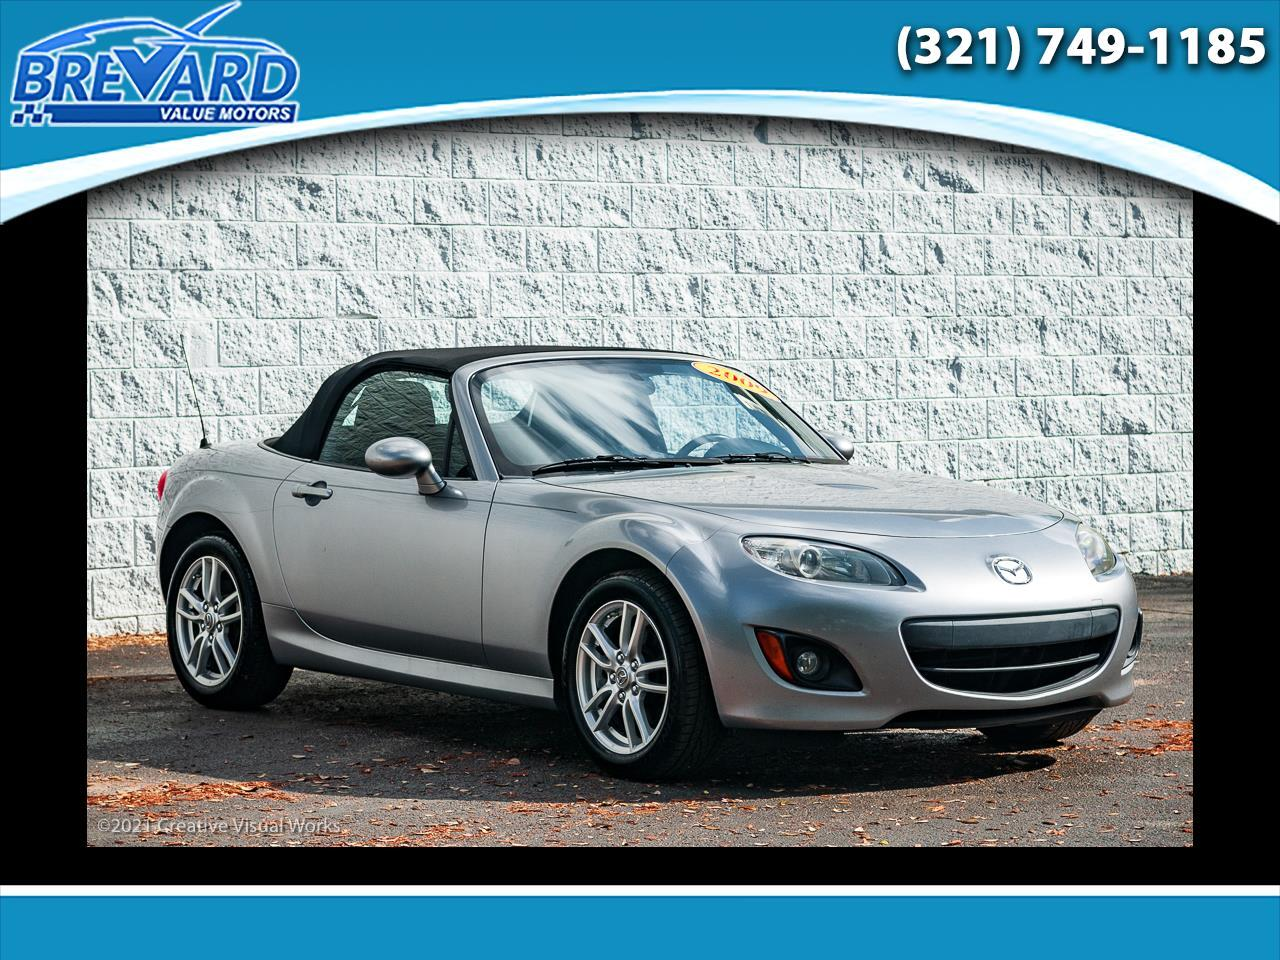 Mazda MX-5 Miata Grand Touring 2009